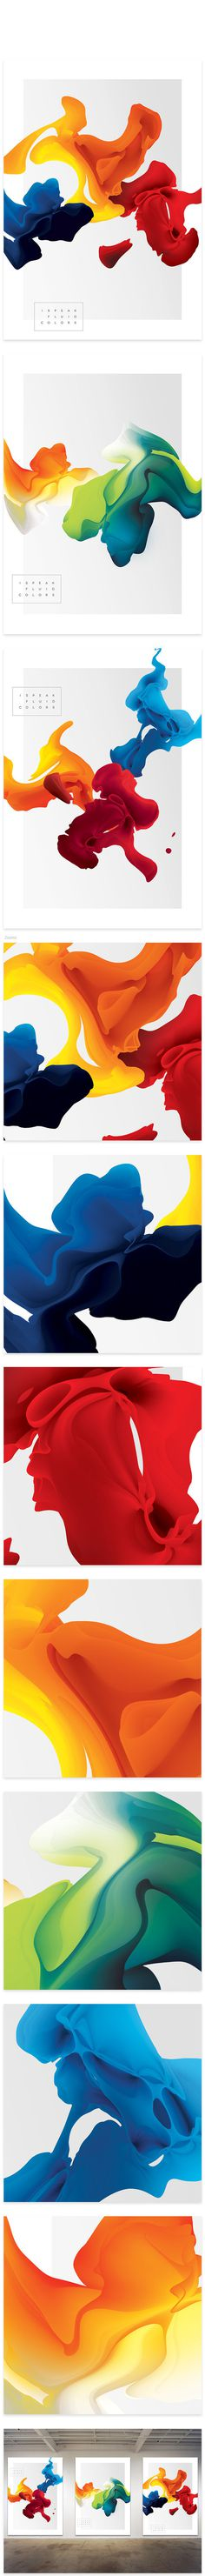 #colors #red #blue #yellow #colorful #blend #walls #art